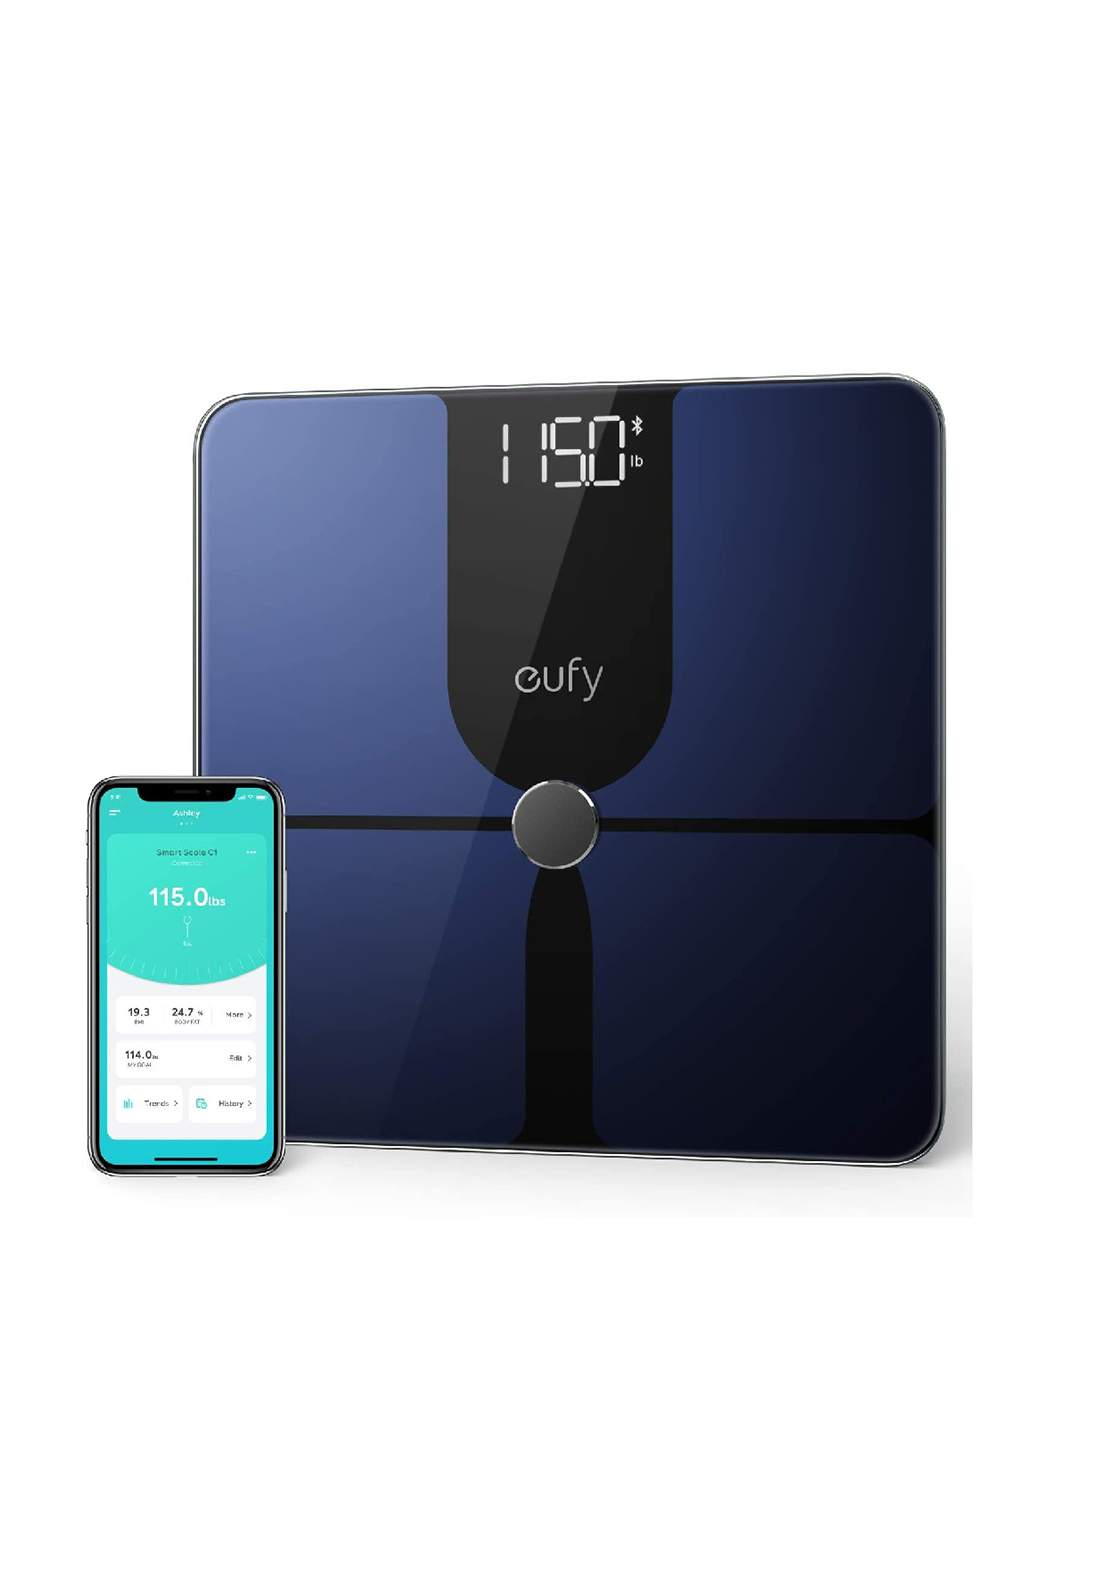 Anker T9147 Smart Scale P1 with Bluetooth - Navy   ميزان رقمي